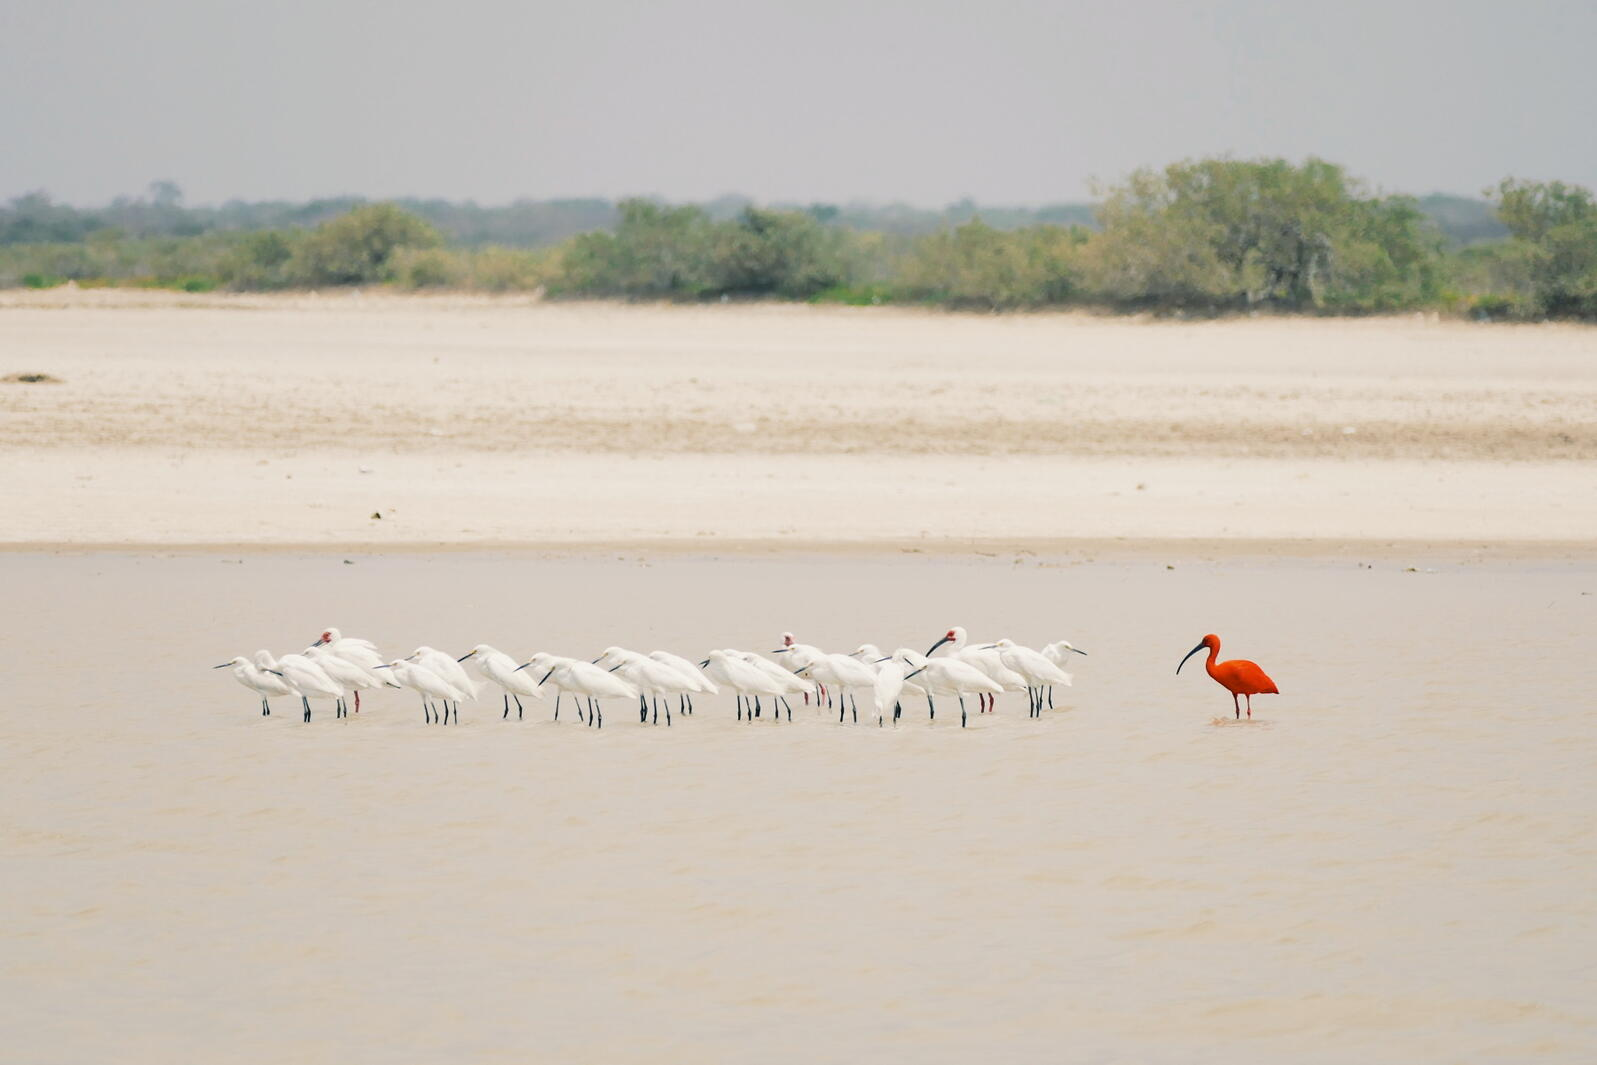 A Scarlet Ibis stands out from the crowd of Snowy Egrets and White Ibis at Los Flamencos Sanctuary, Colombia. Noah Strycker